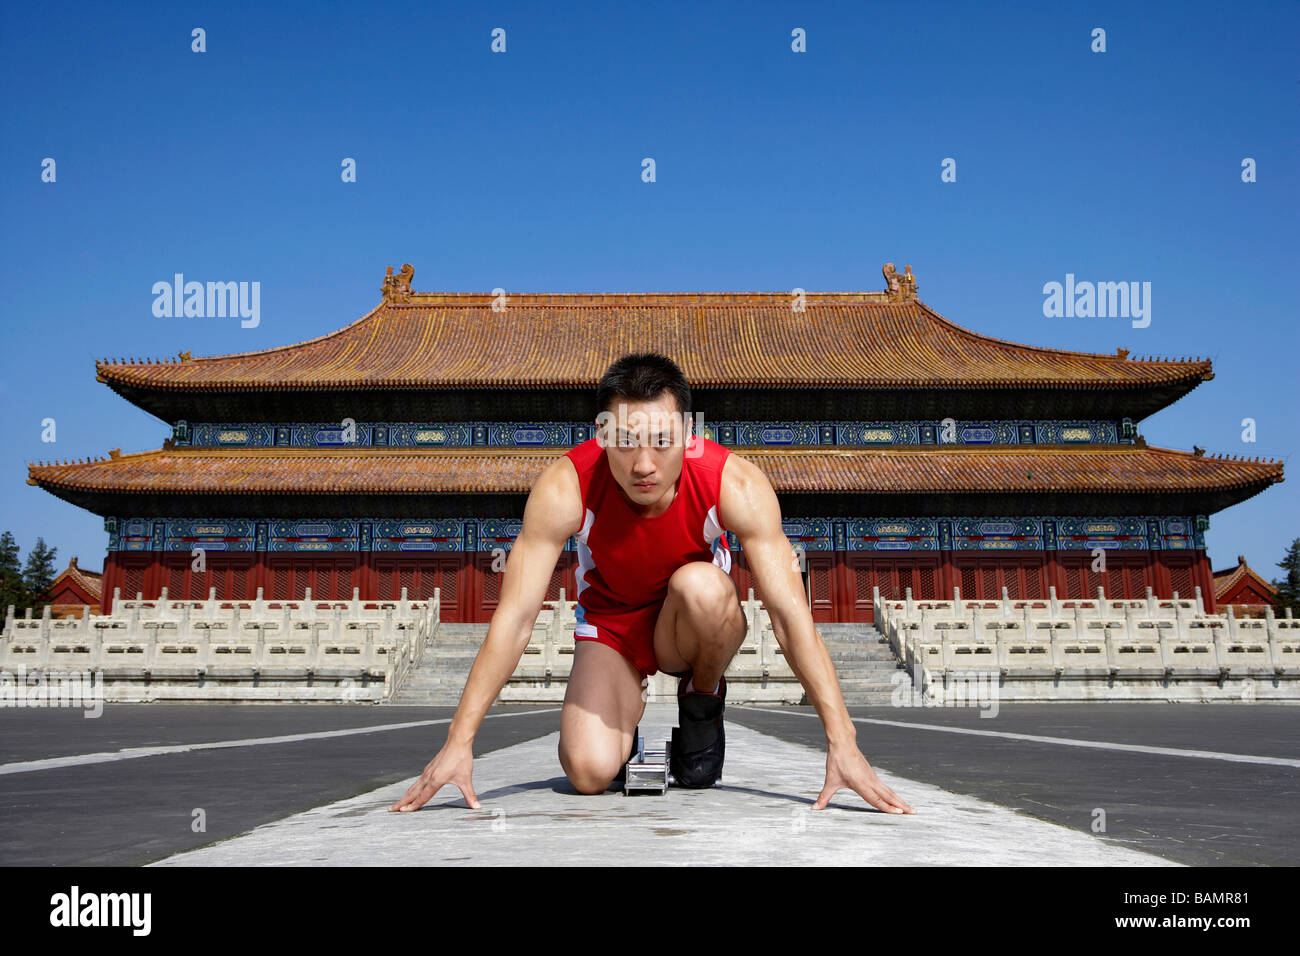 Portrait Of Athlete In Front Of Temple - Stock Image